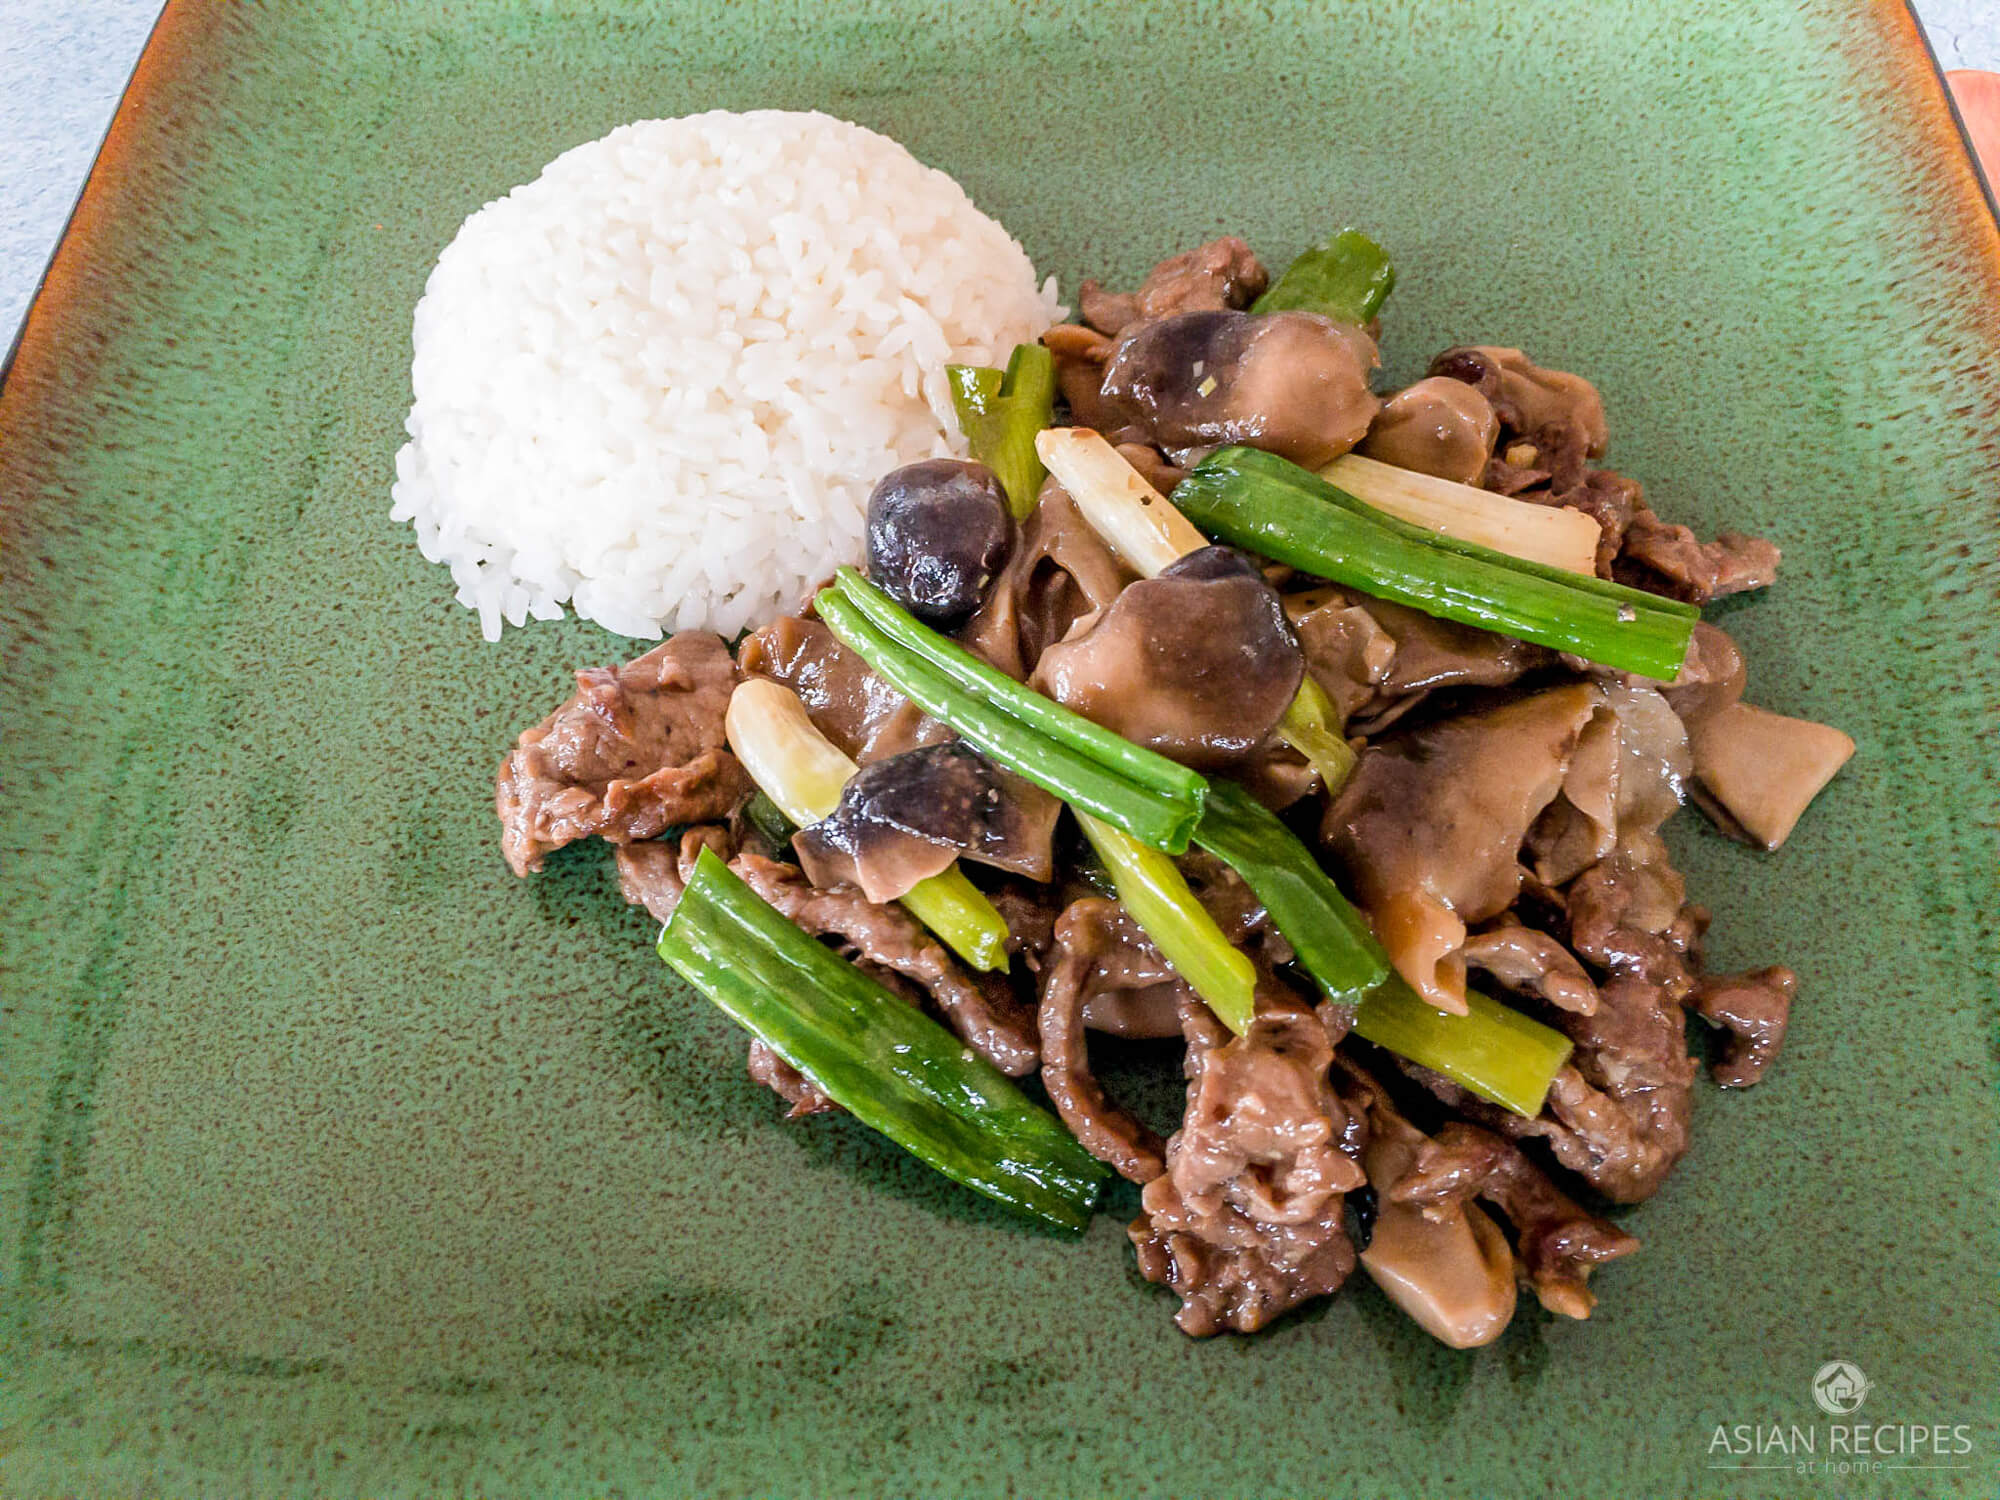 Straw mushrooms and Asian-style marinated beef are stir-fried together in this delicious and easy recipe.